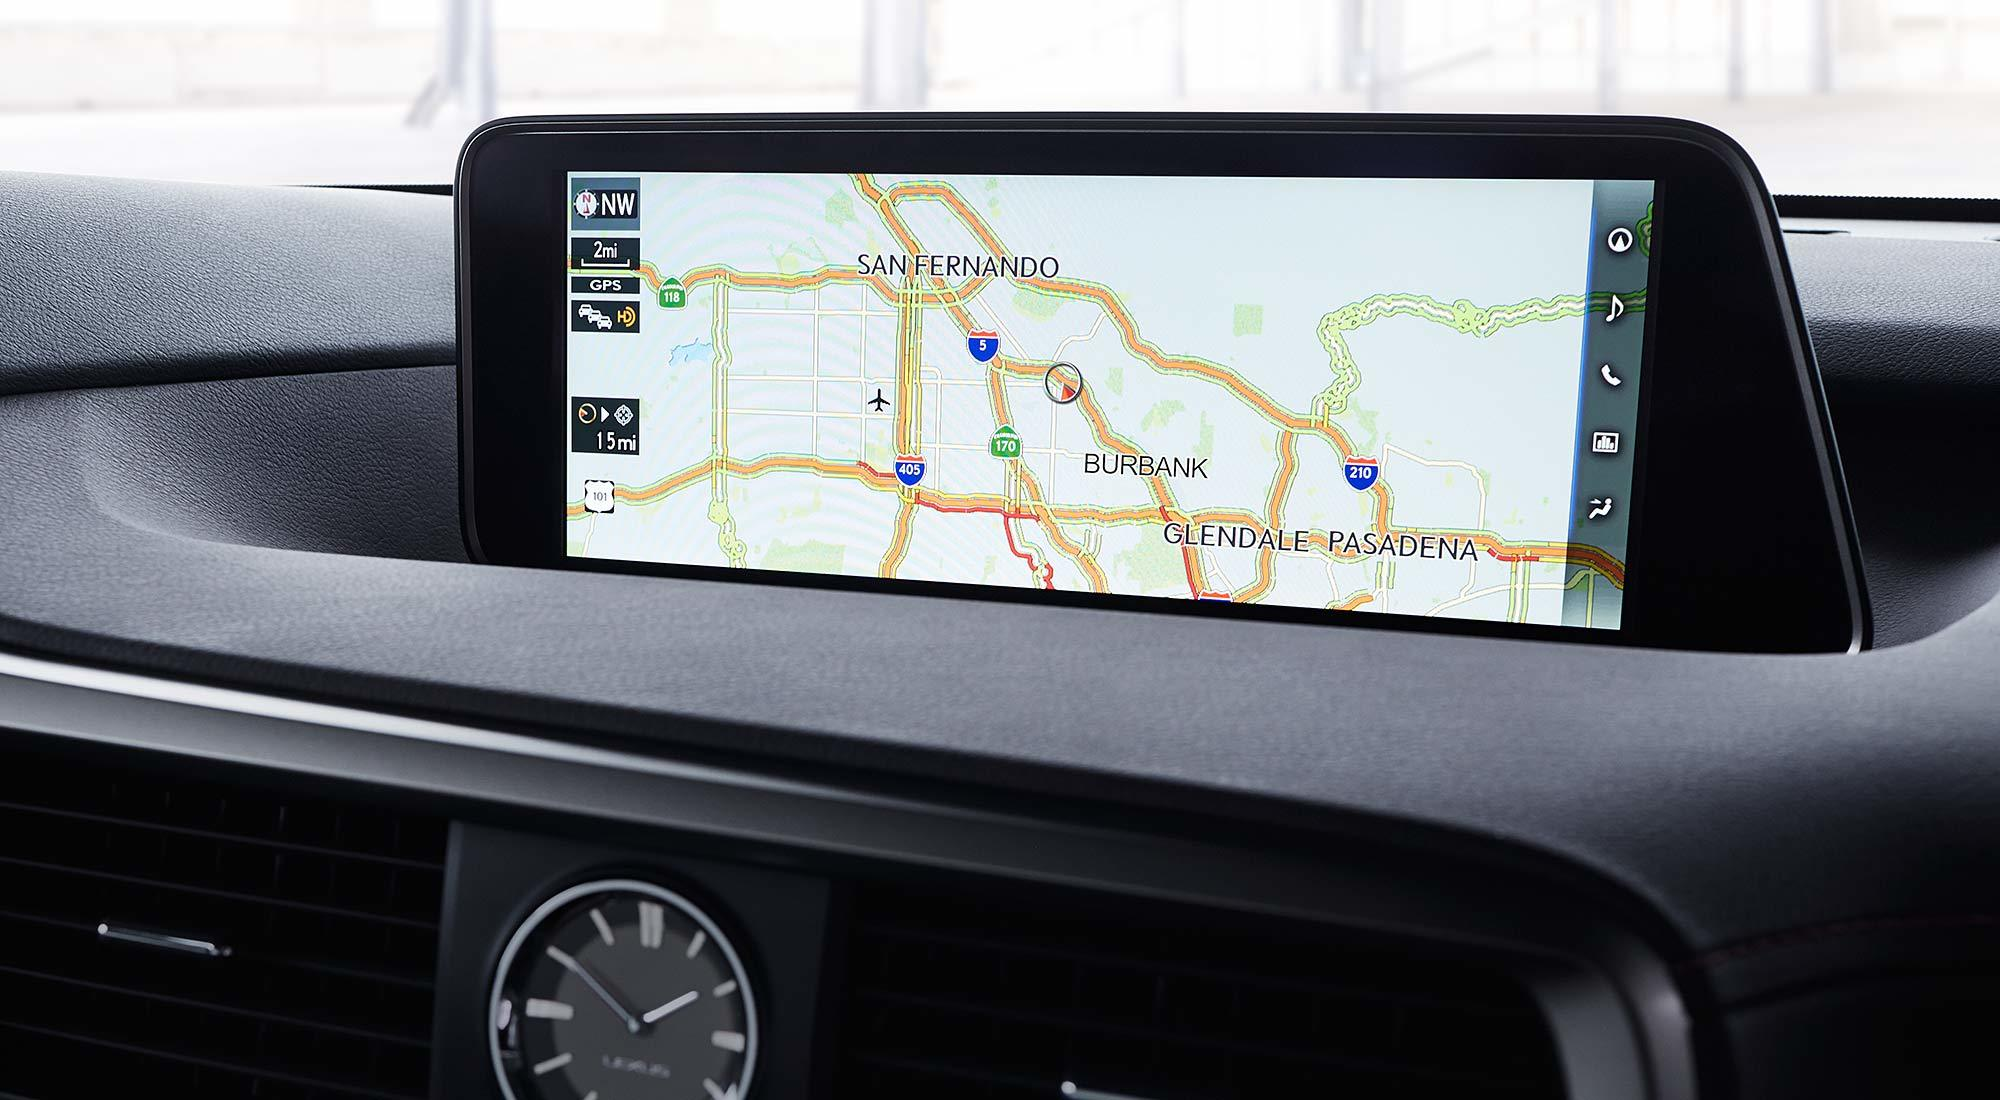 12.3-inch Monitor with Full-Screen Map